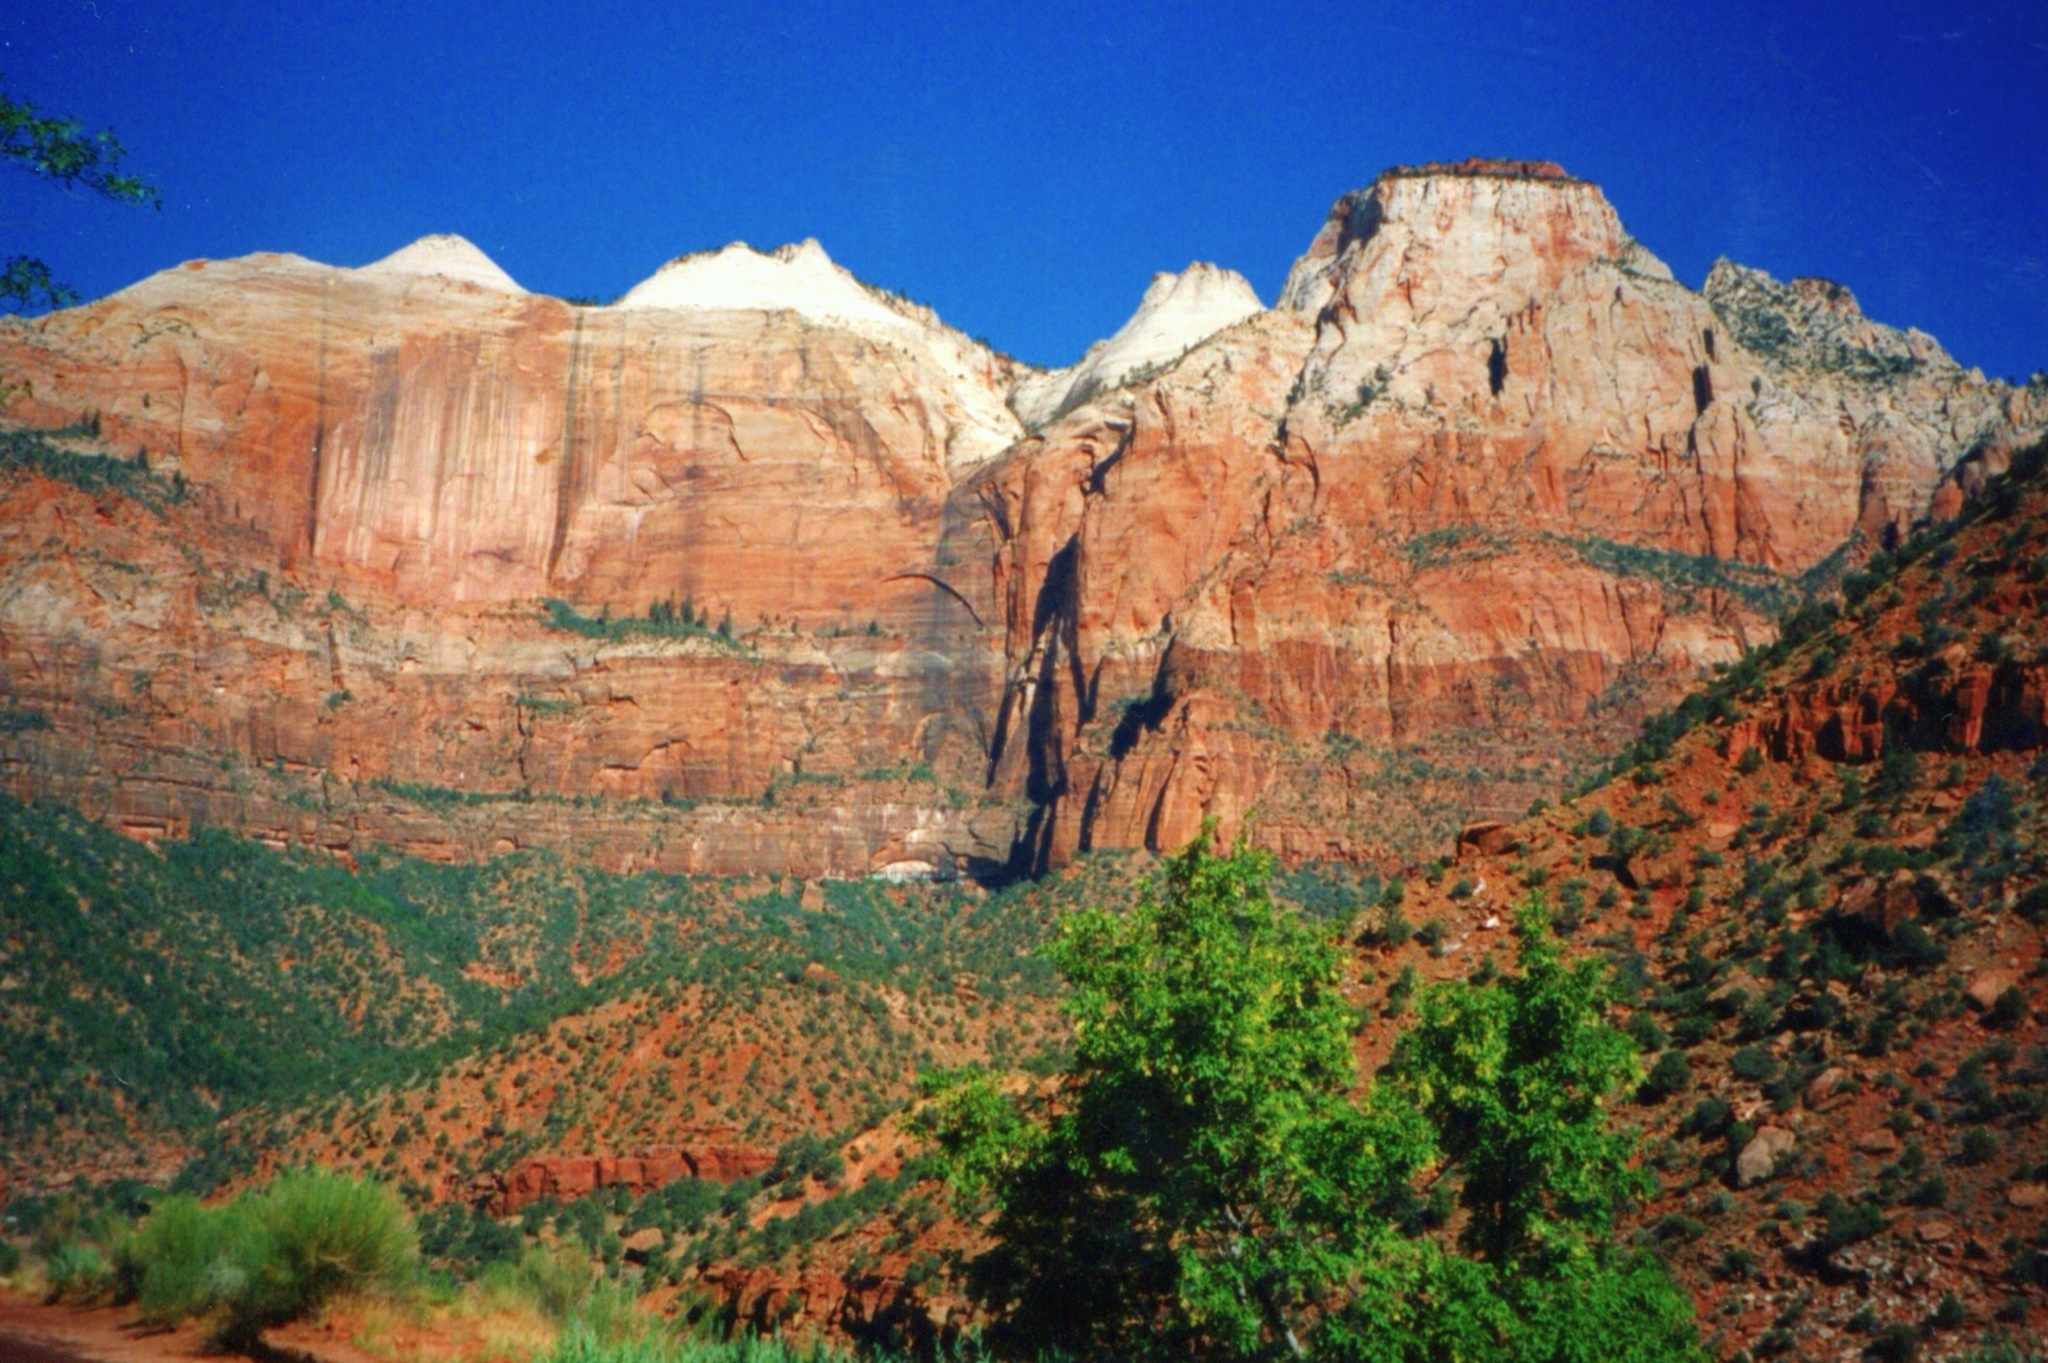 Zion National Park in the United States